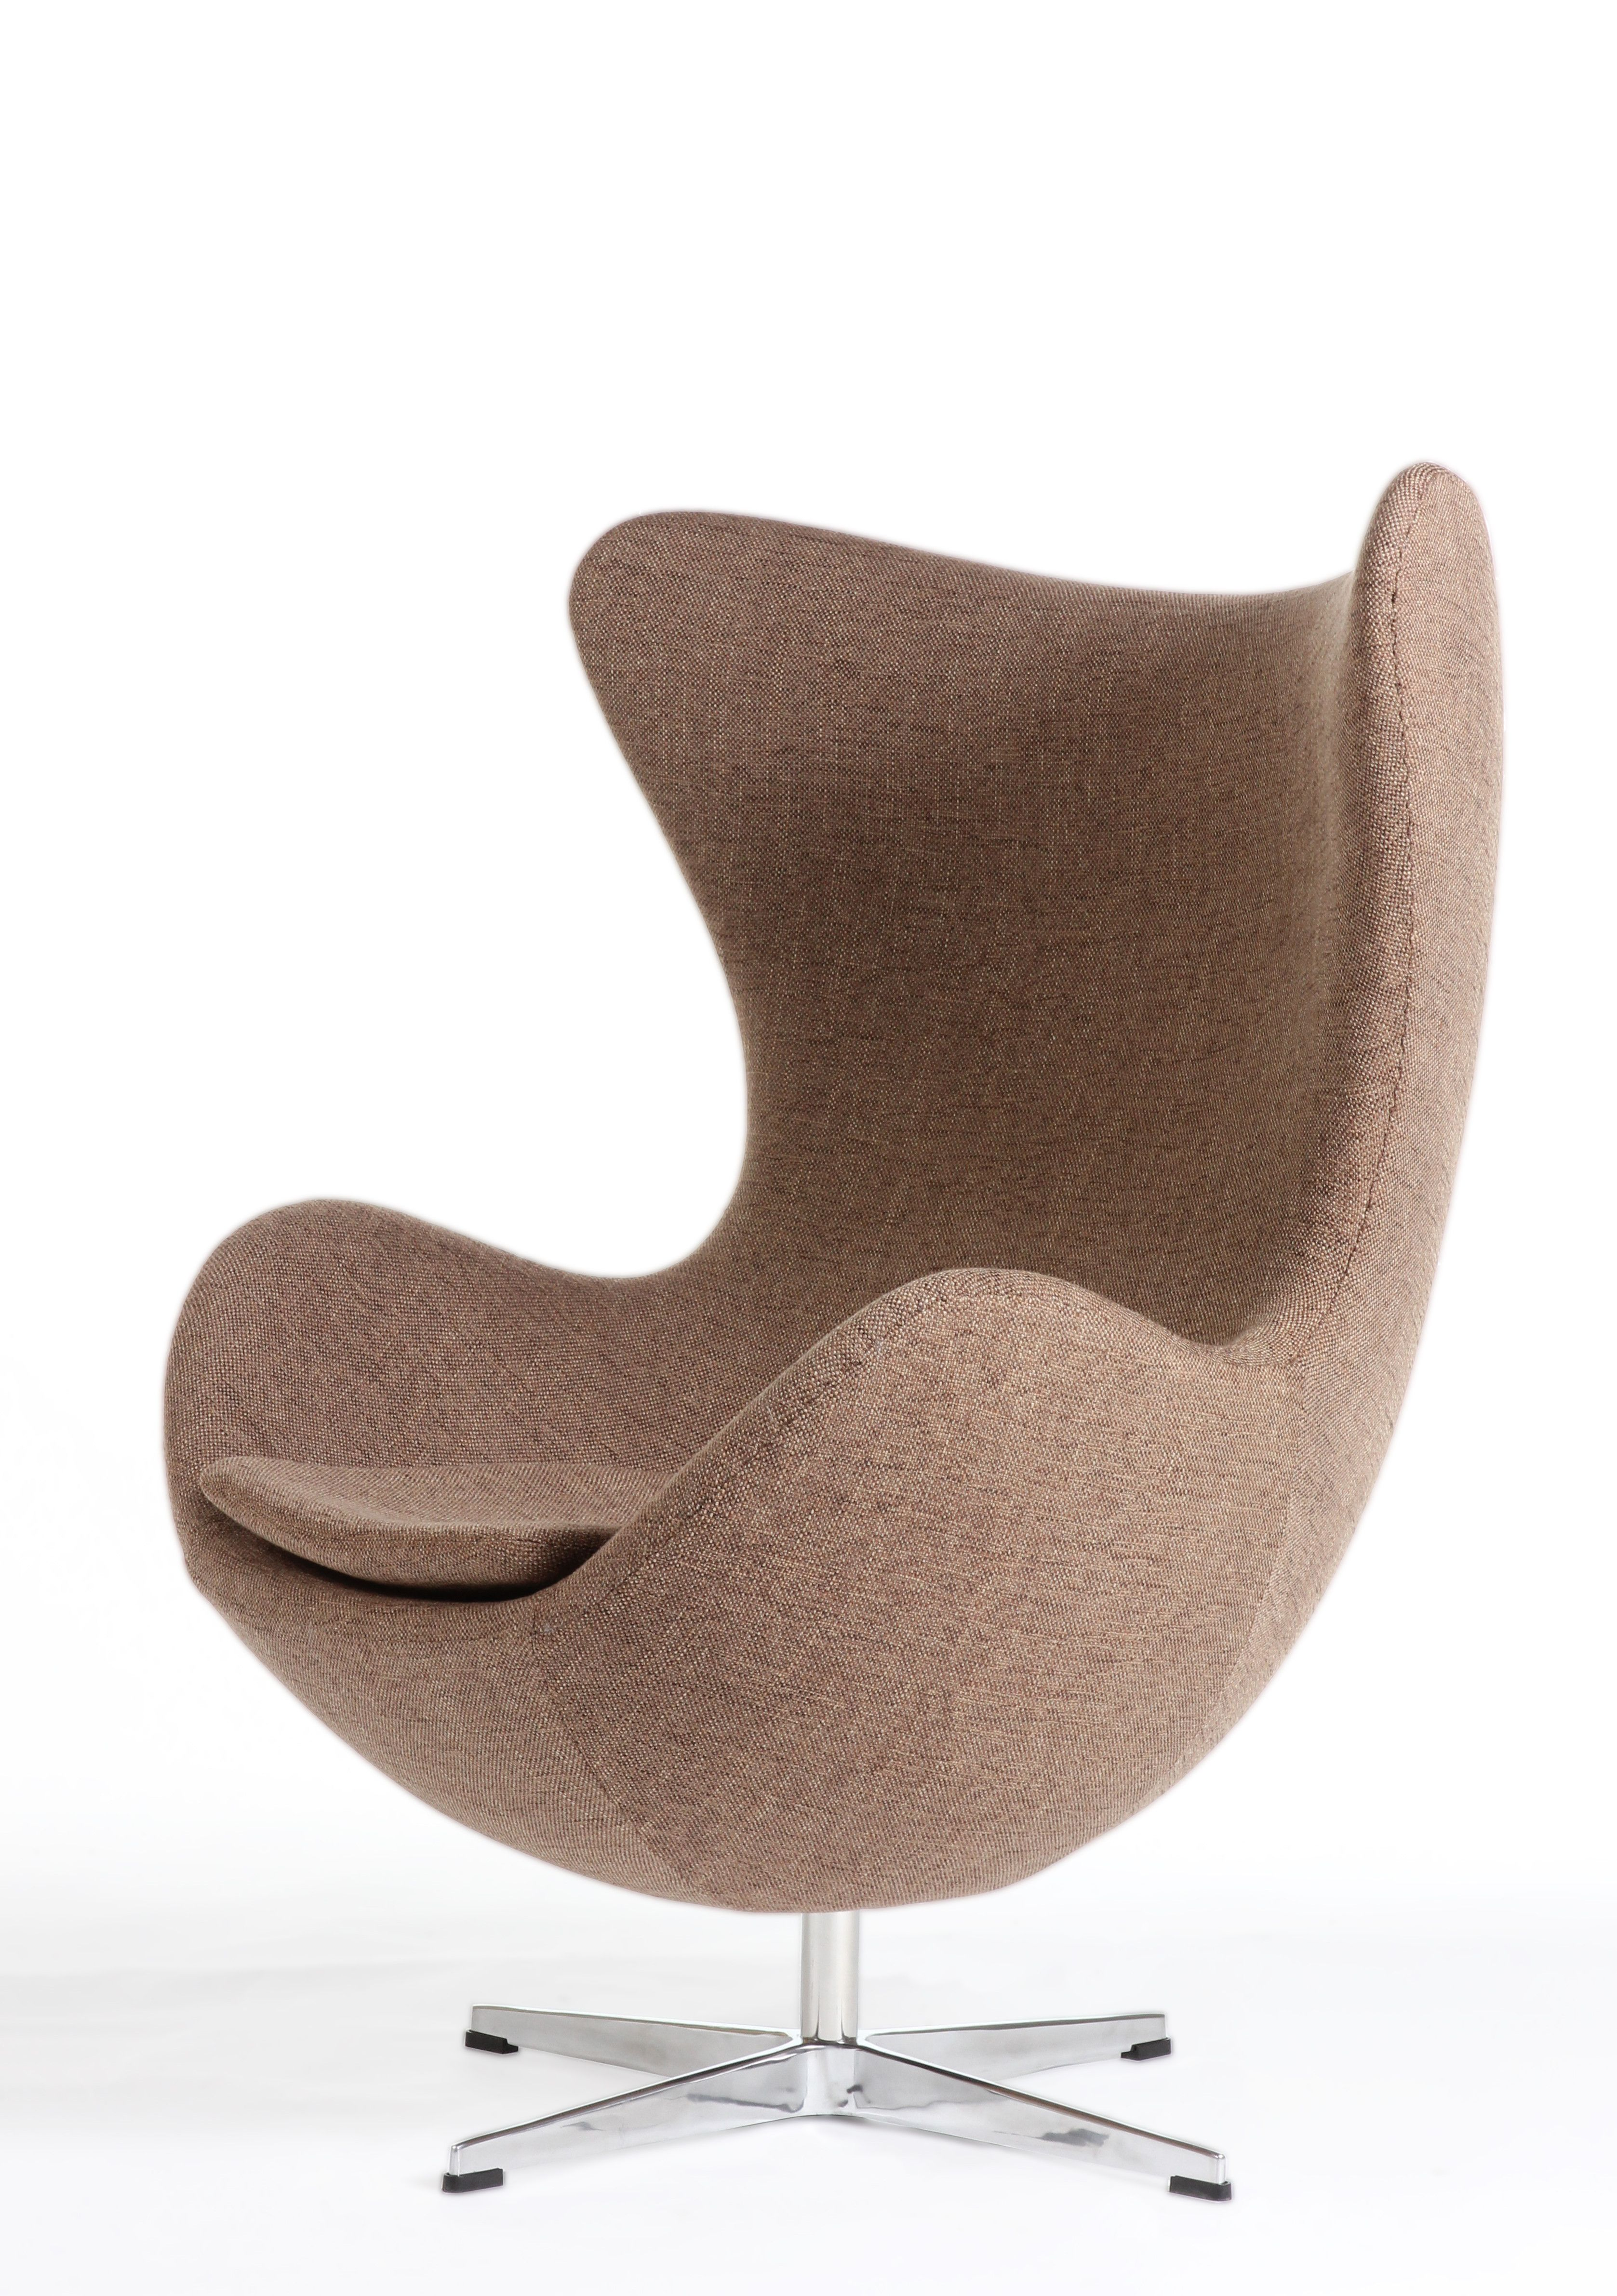 MidCentury Modern Reproduction Egg Chair Brown Inspired